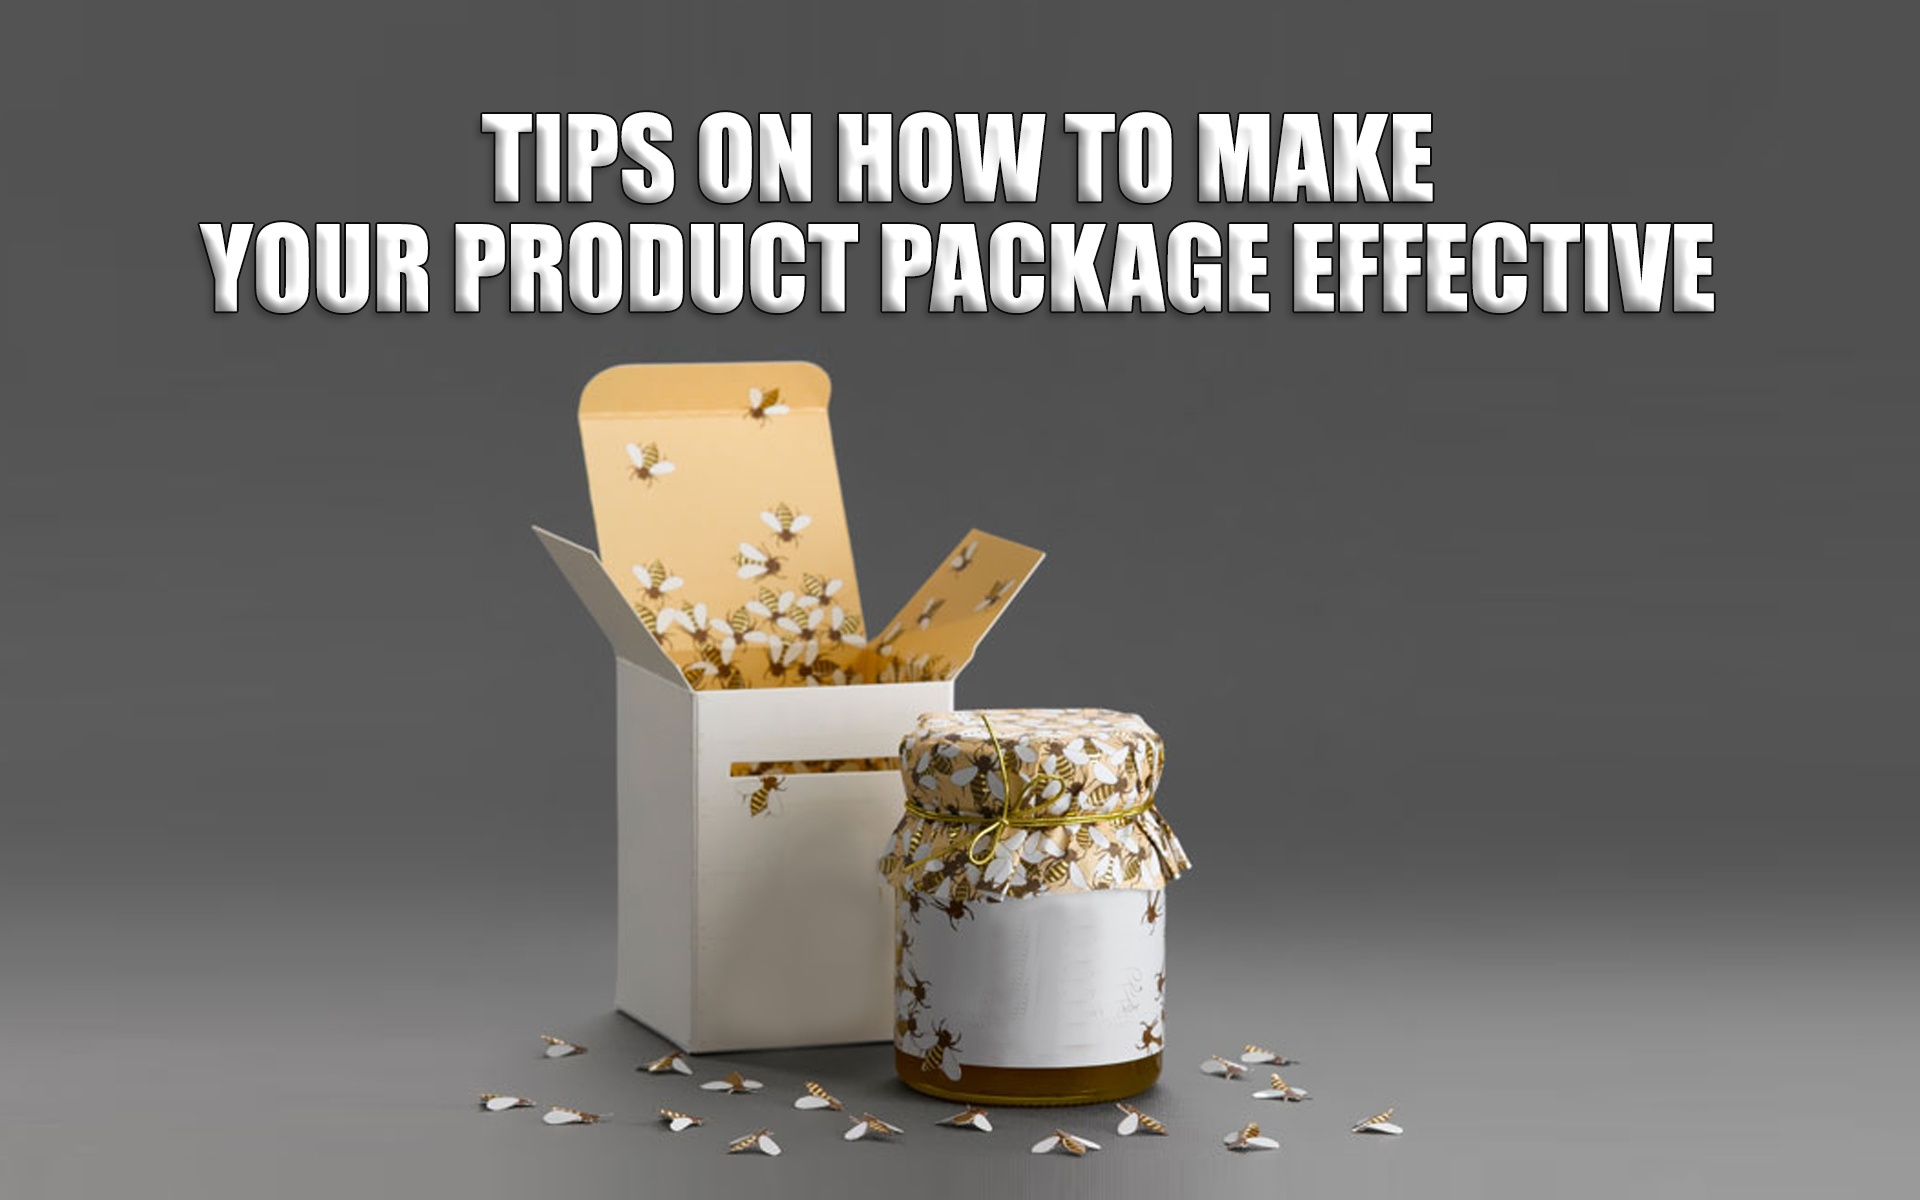 Tips on How to Make Your Product Package Effective